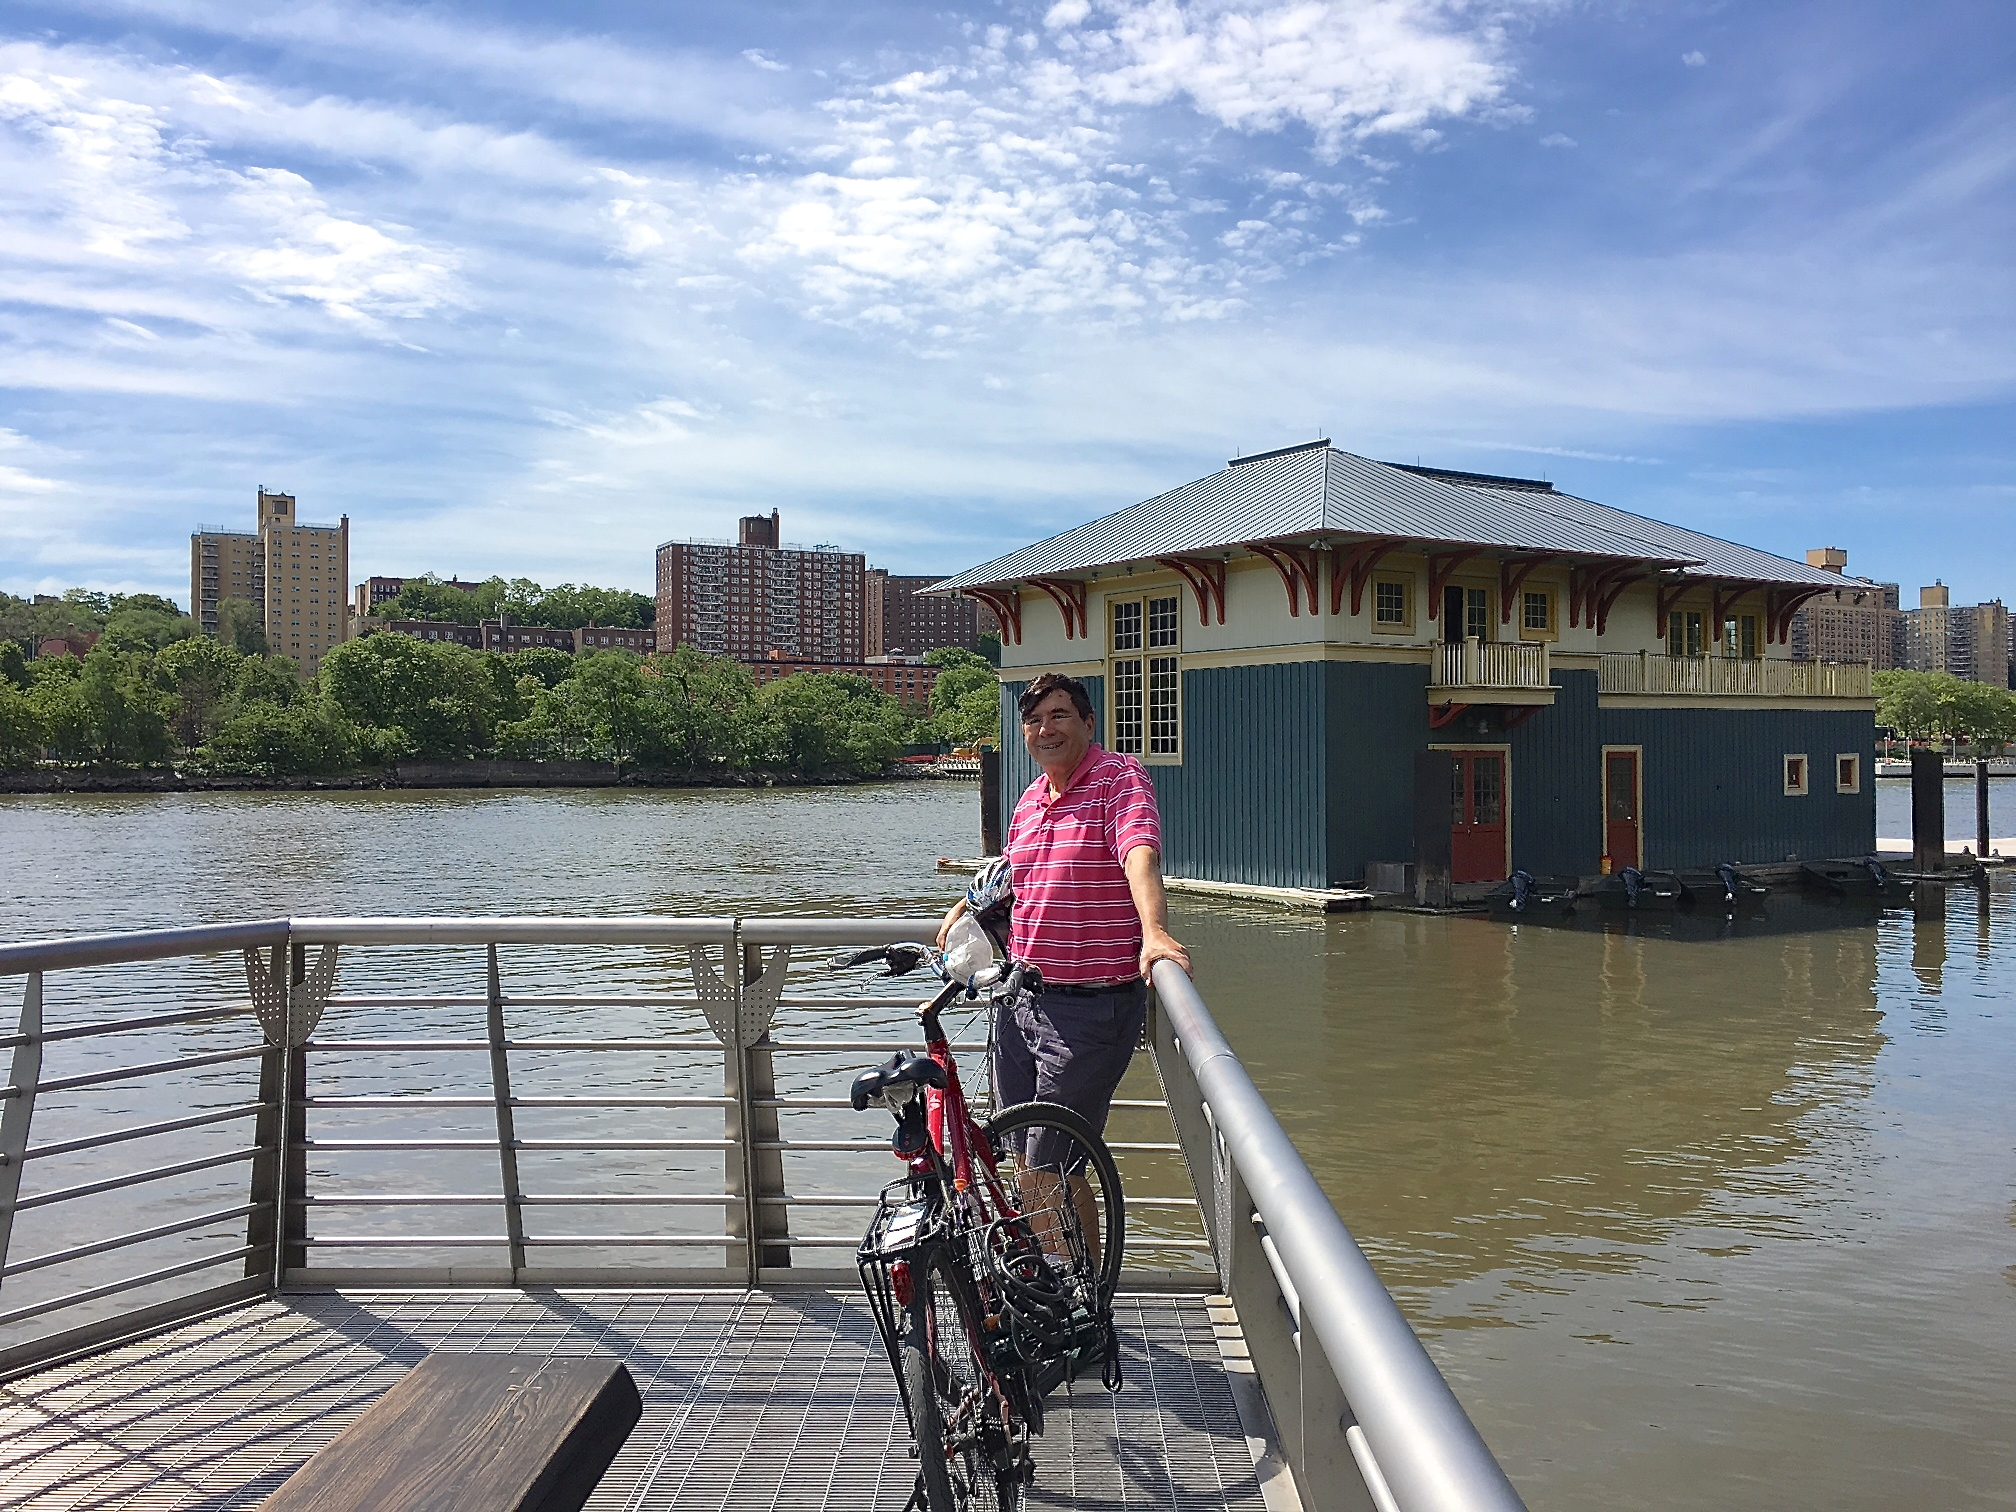 John along the Harlem River, 6-4-17